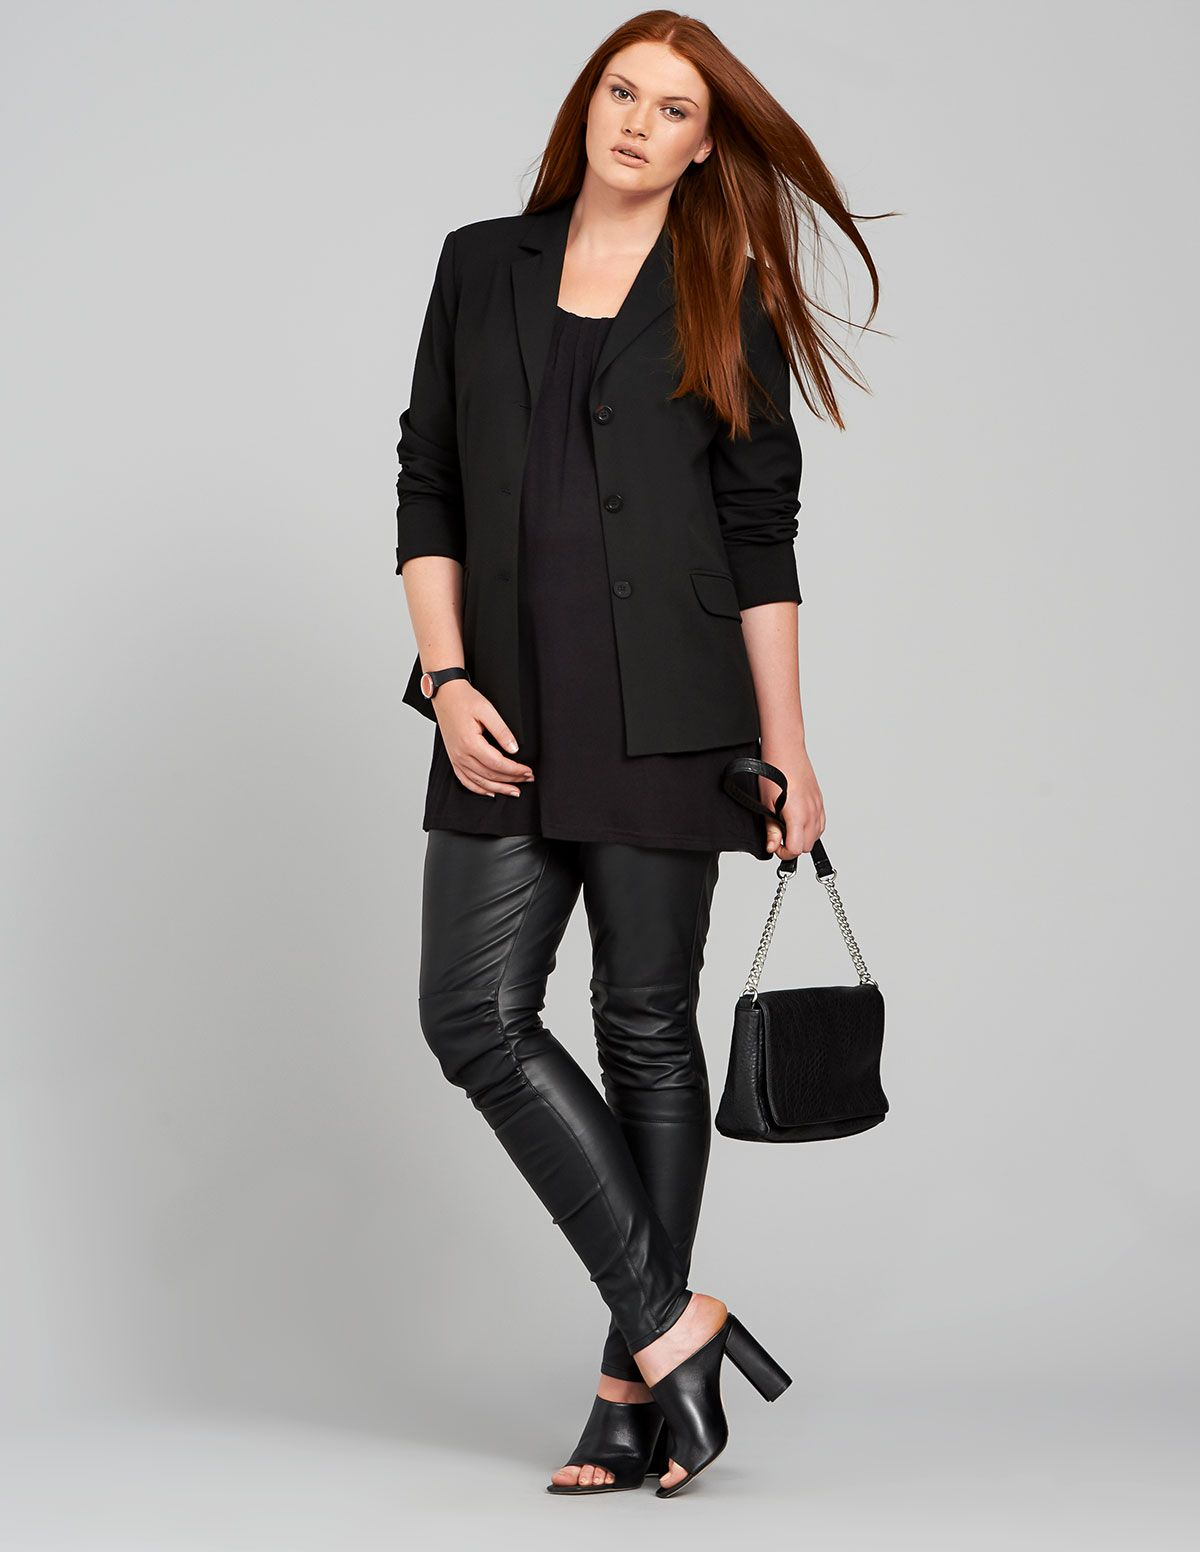 45acdaf583e Faux leather trousers by Carmakoma at navabi. Exclusive Trousers and Outfits  by Carmakoma